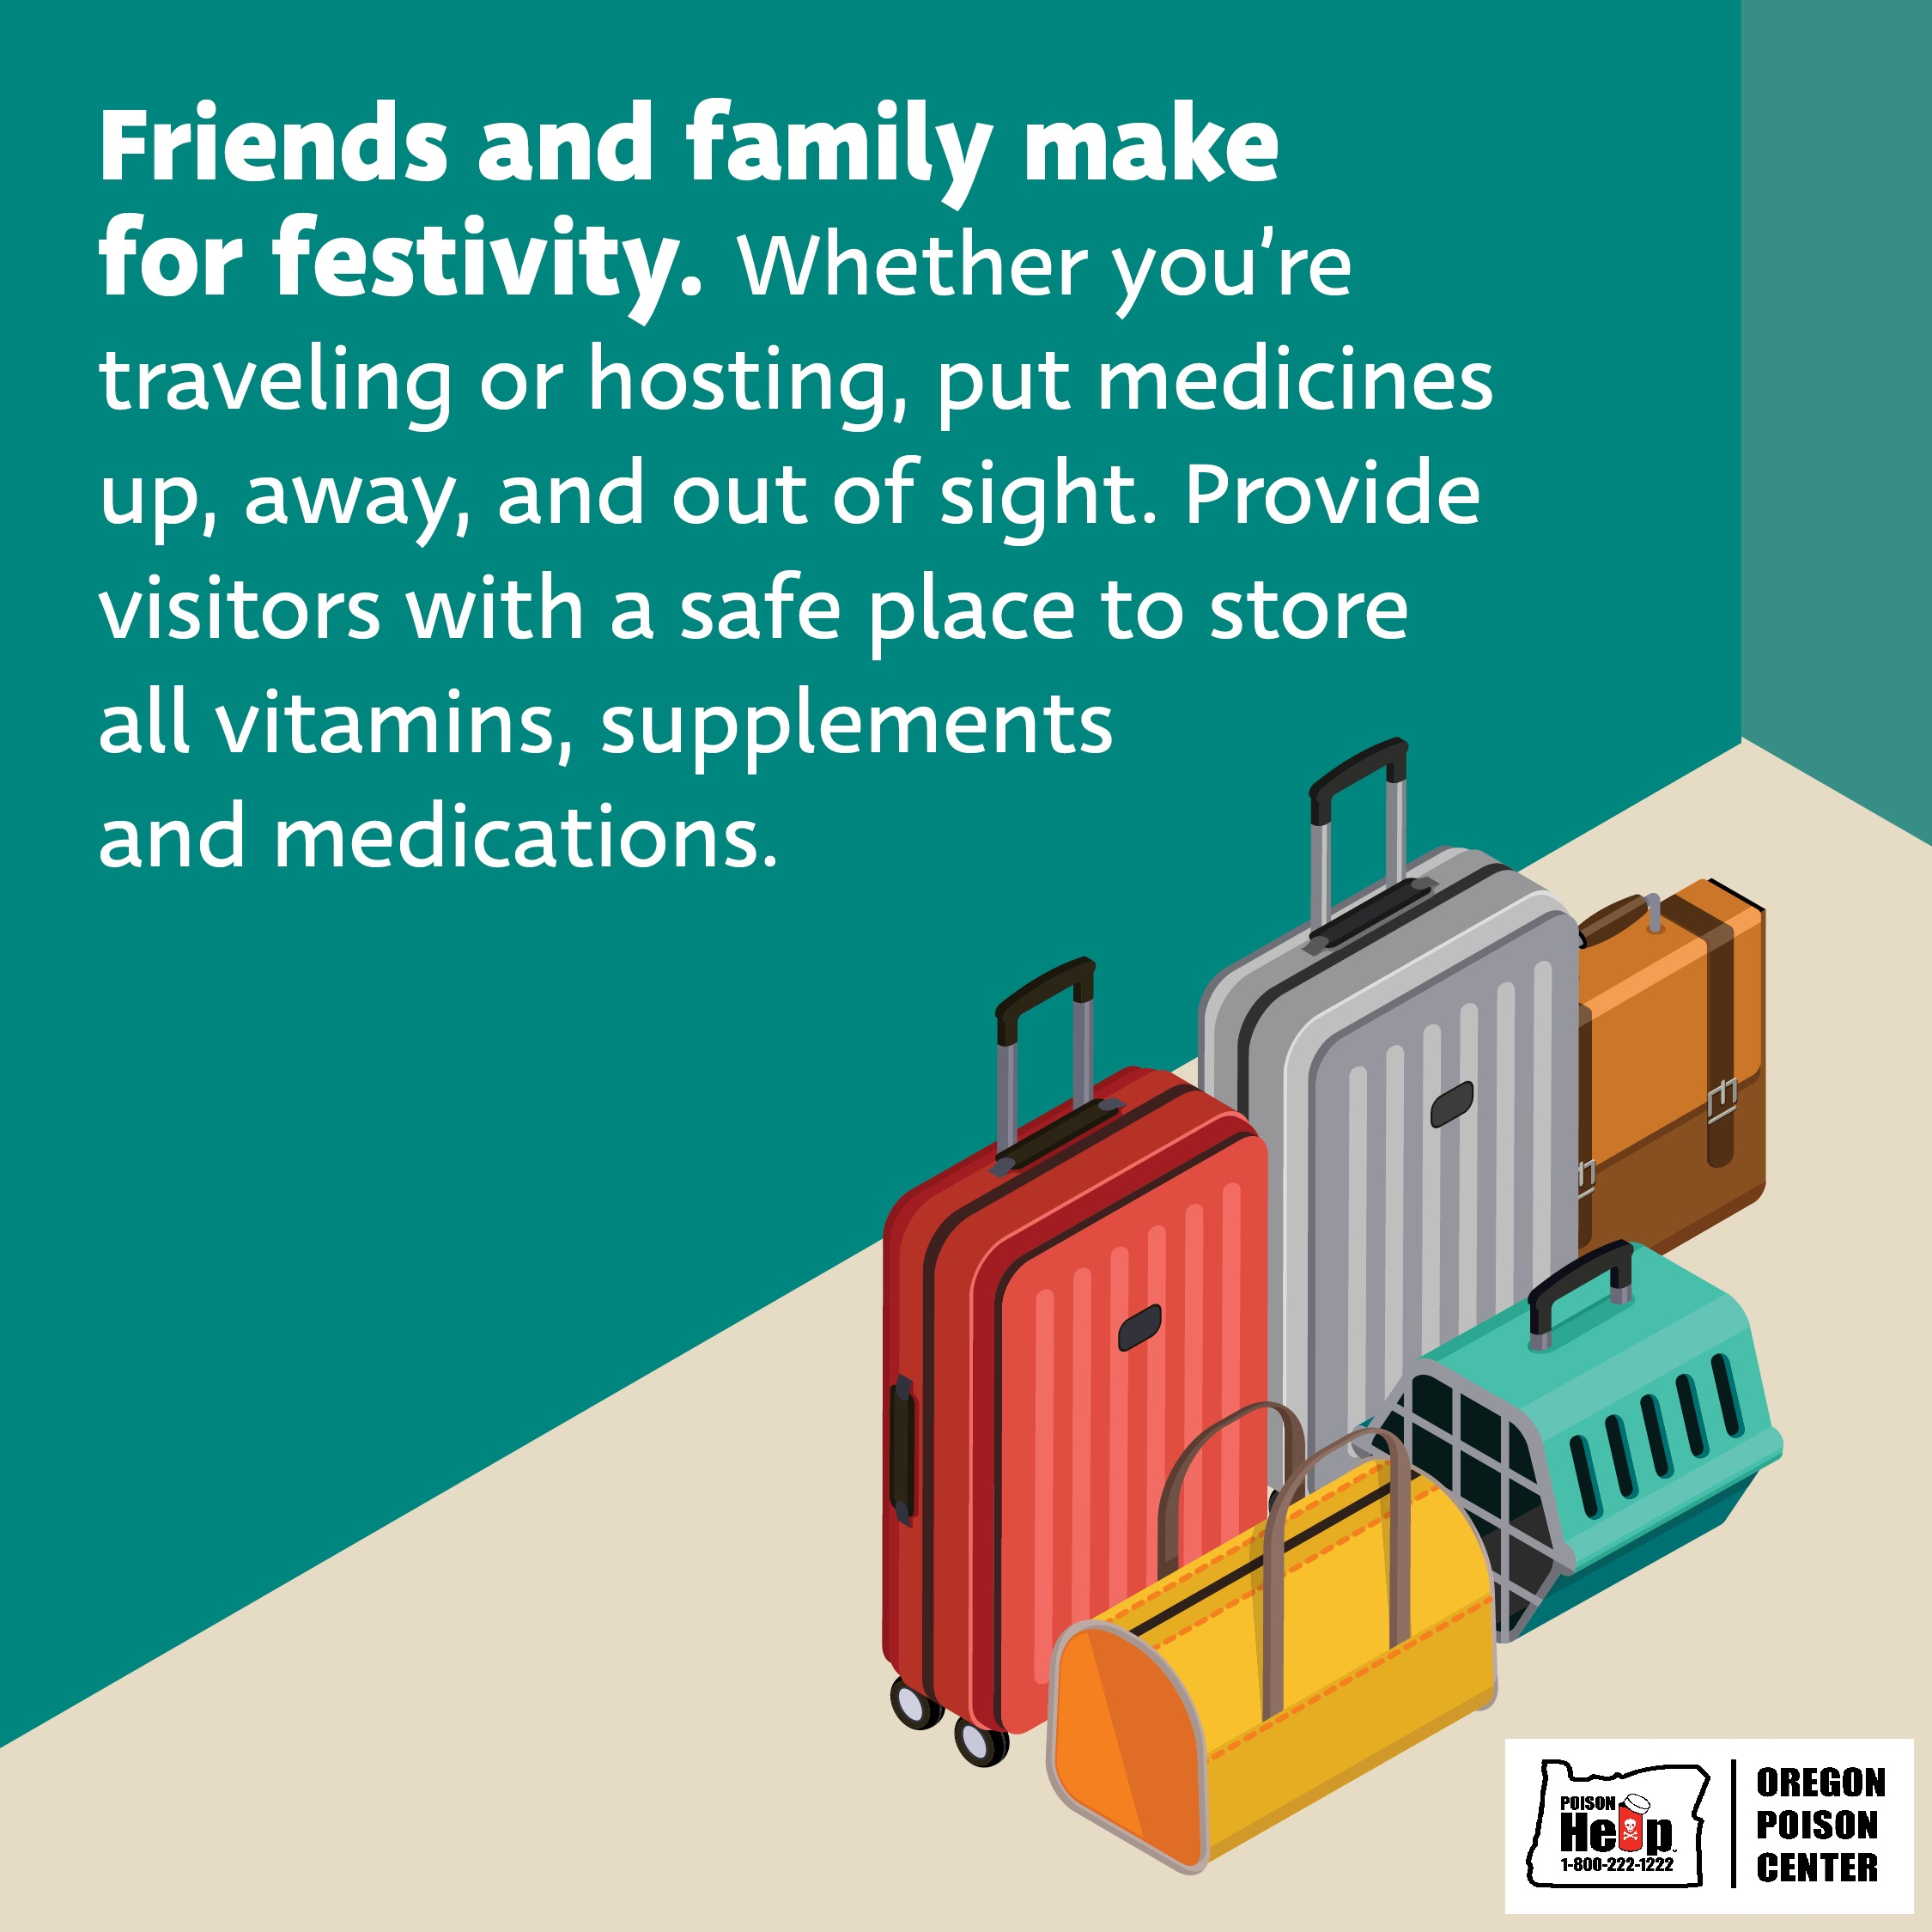 Store medications safely when hosting visitors to prevent accidental exposure to medications, vitamins and supplements.